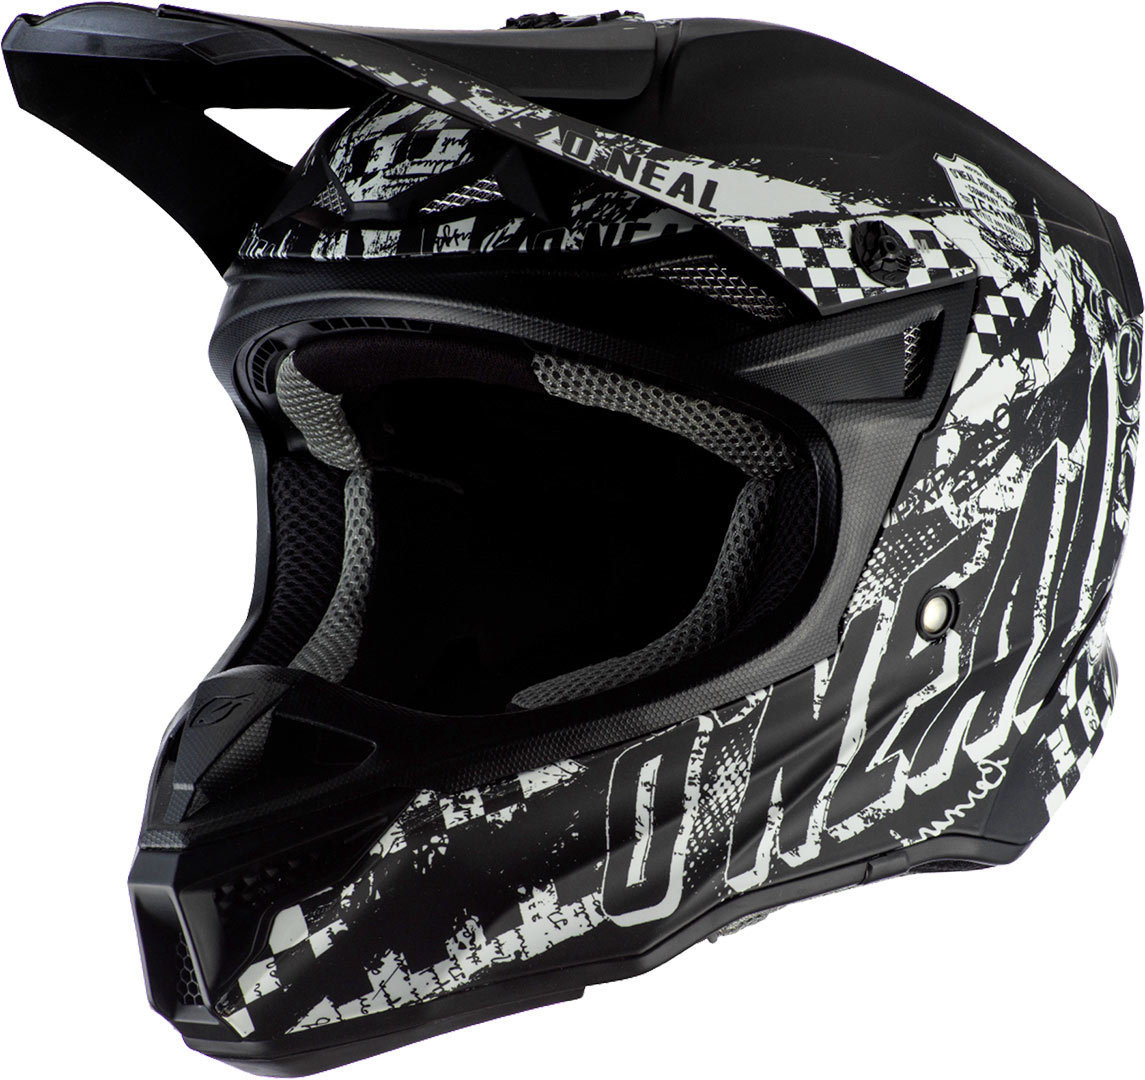 Oneal 5Series Polyacrylite Rider Motocross Helm, schwarz-weiss, Größe S, schwarz-weiss, Größe S